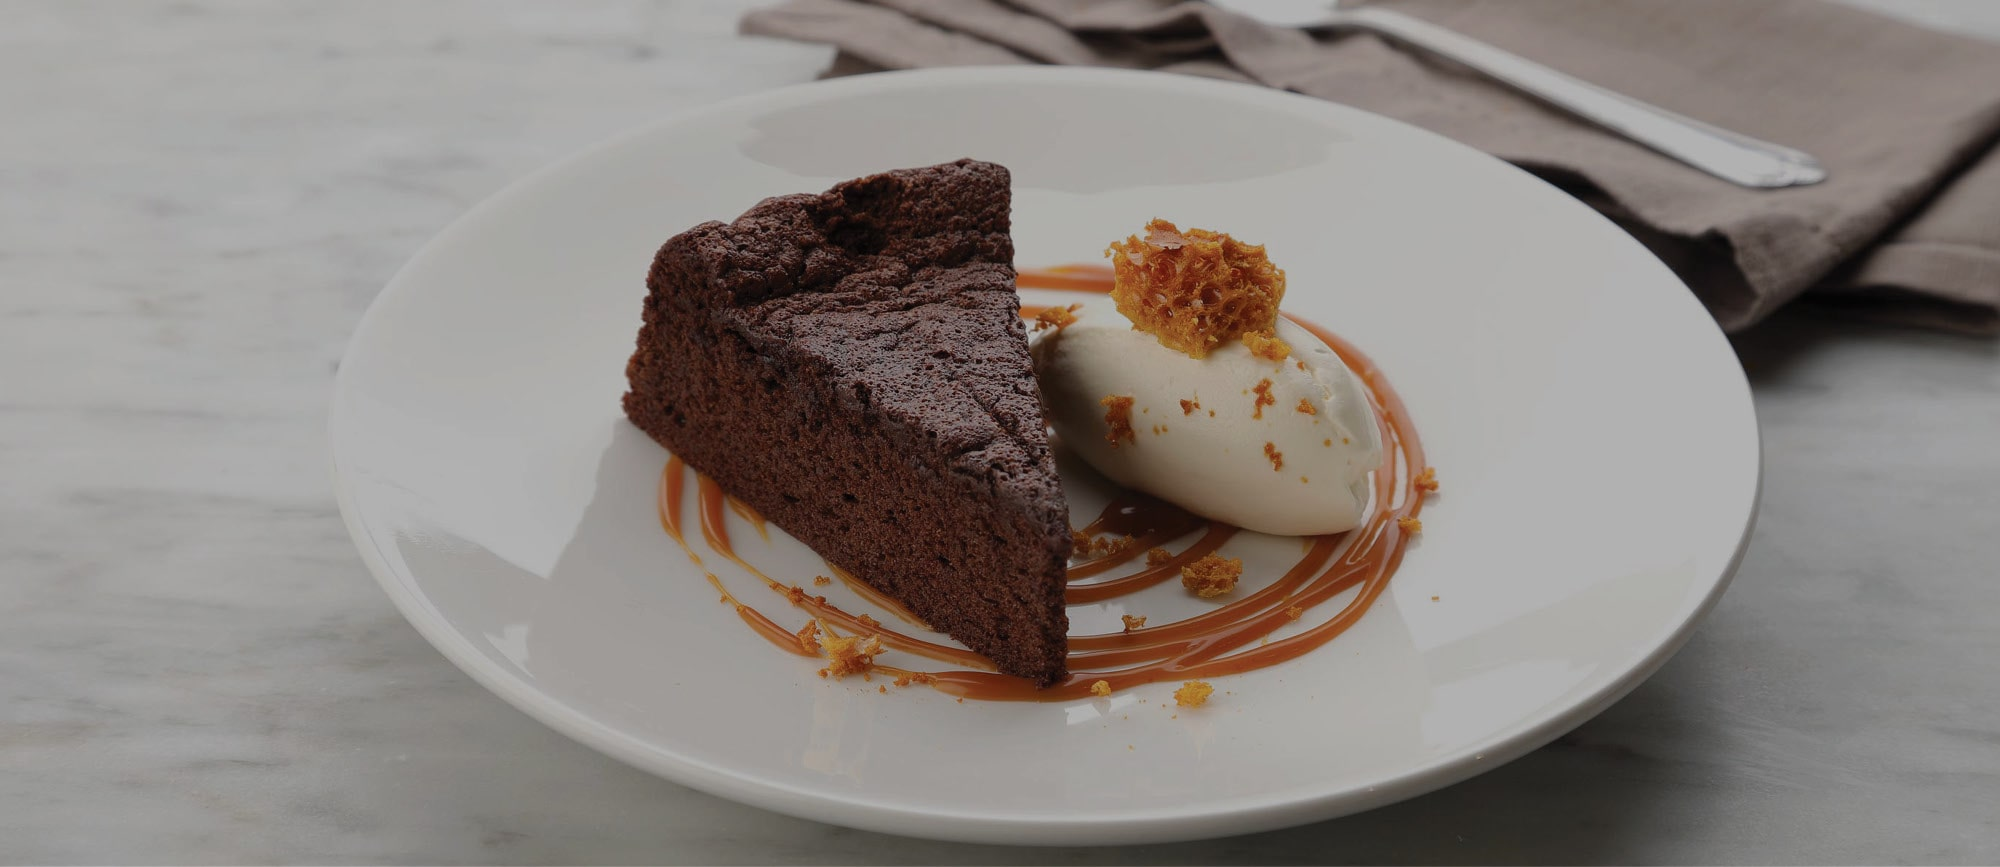 Soft Chocolate Cake Recipe by Head Chef at The Kitchen at Restoration Yard